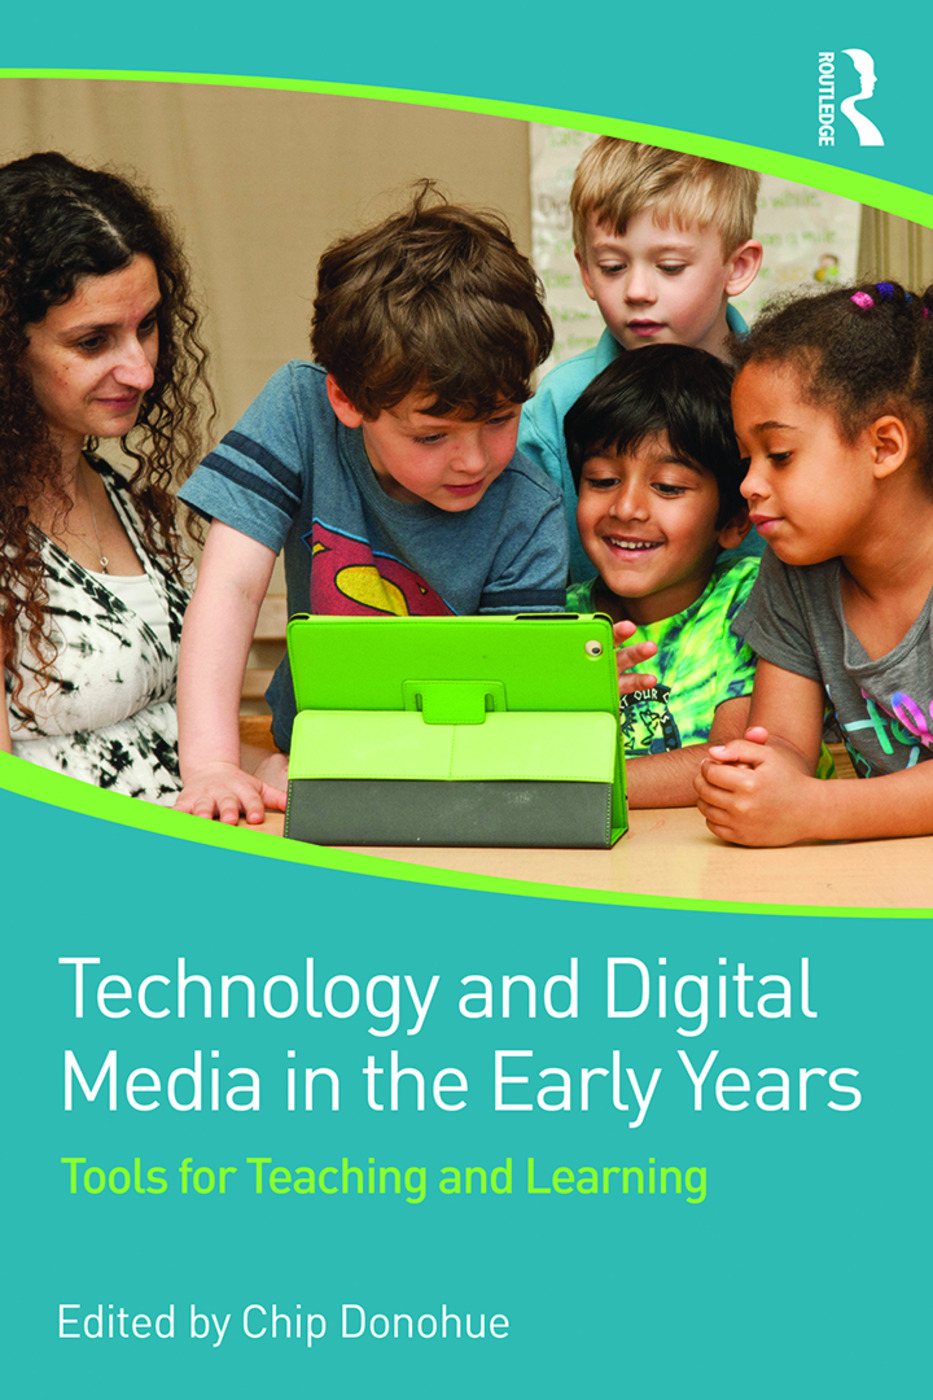 Technology and Digital Media in the Early Years – A Textbook for 21st Century Educators